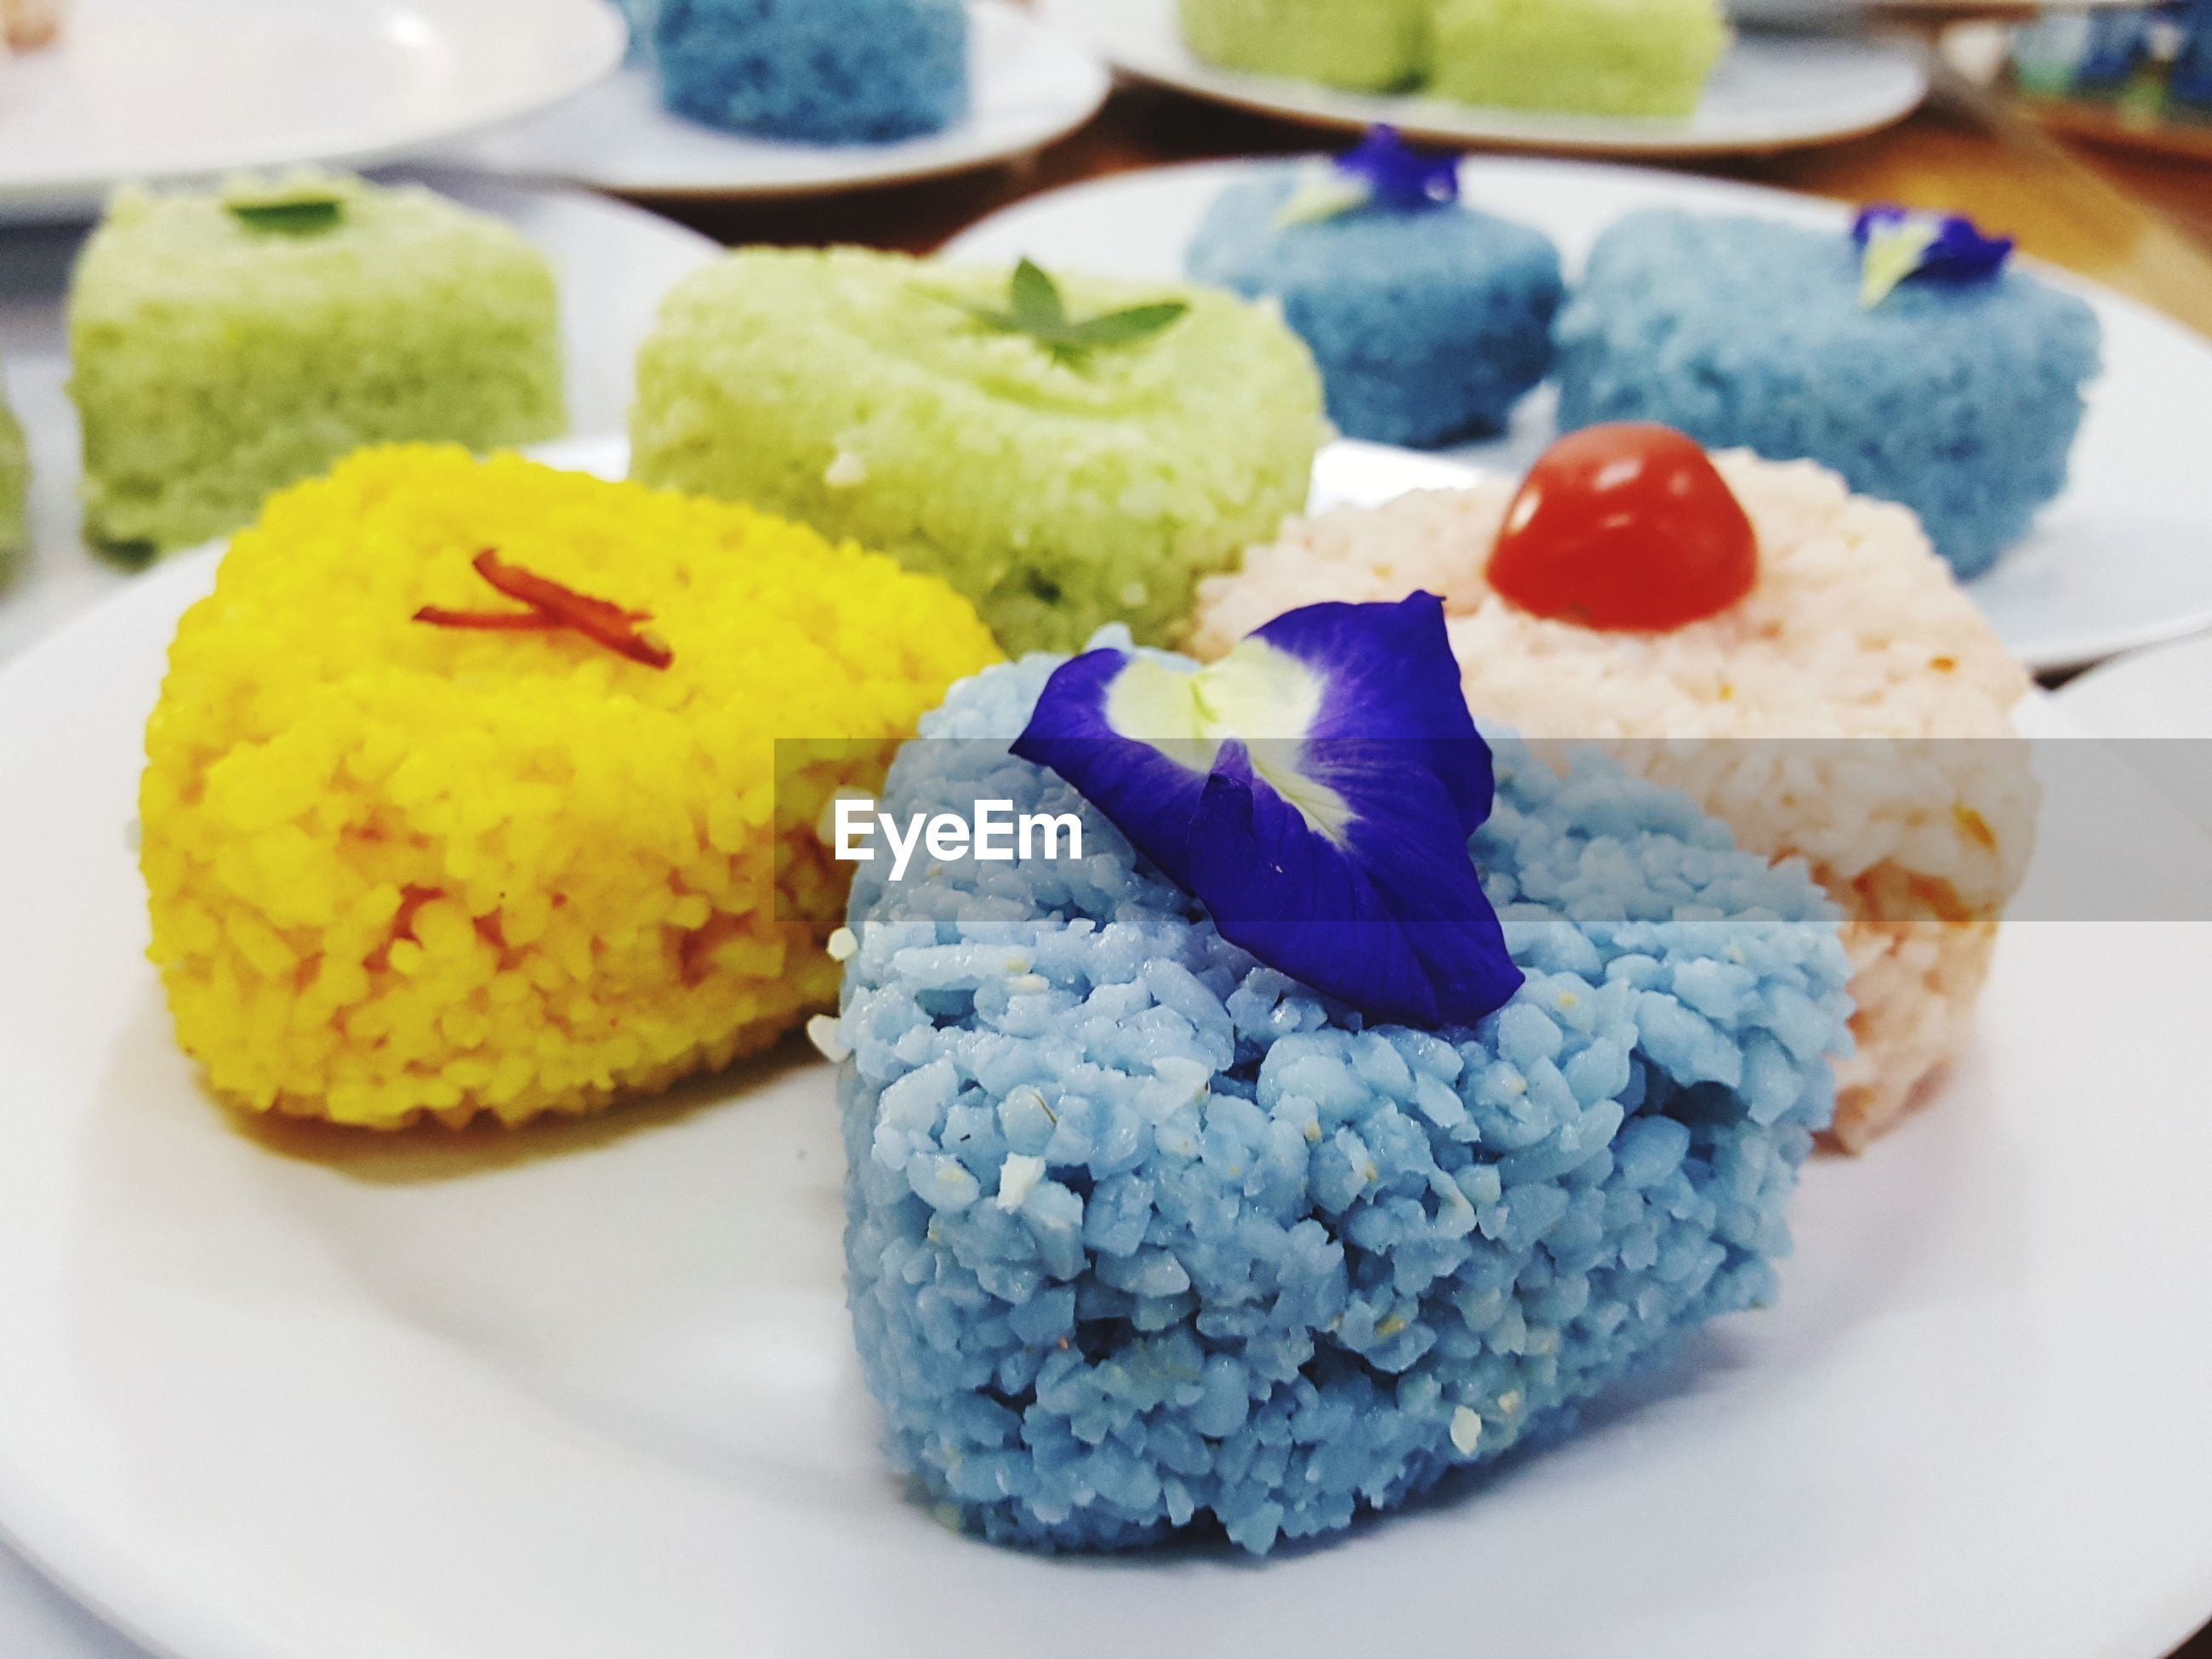 Close-up of colorful meal in plate